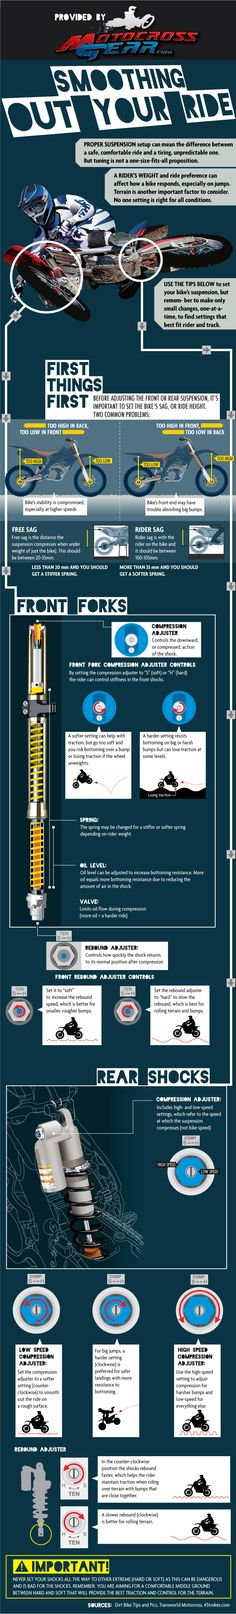 Motocross Suspension Setup Guide. #motocross #setting #suspension